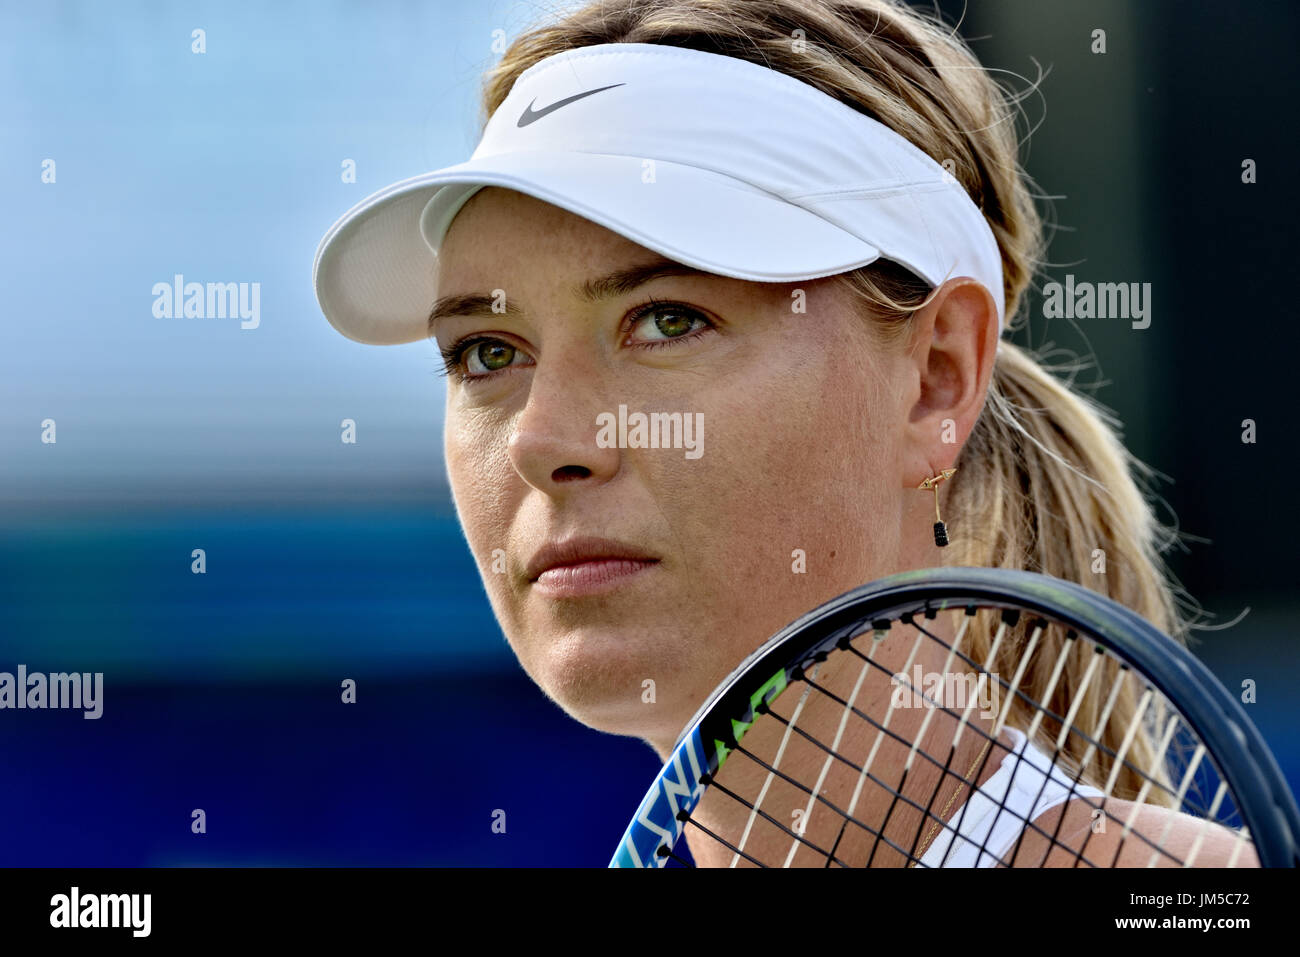 Maria Sharapova, tennis star preps for her 2017 WTT match in Newport Beach, CA plotting her comeback after a 15-month suspension for meldonium use. - Stock Image